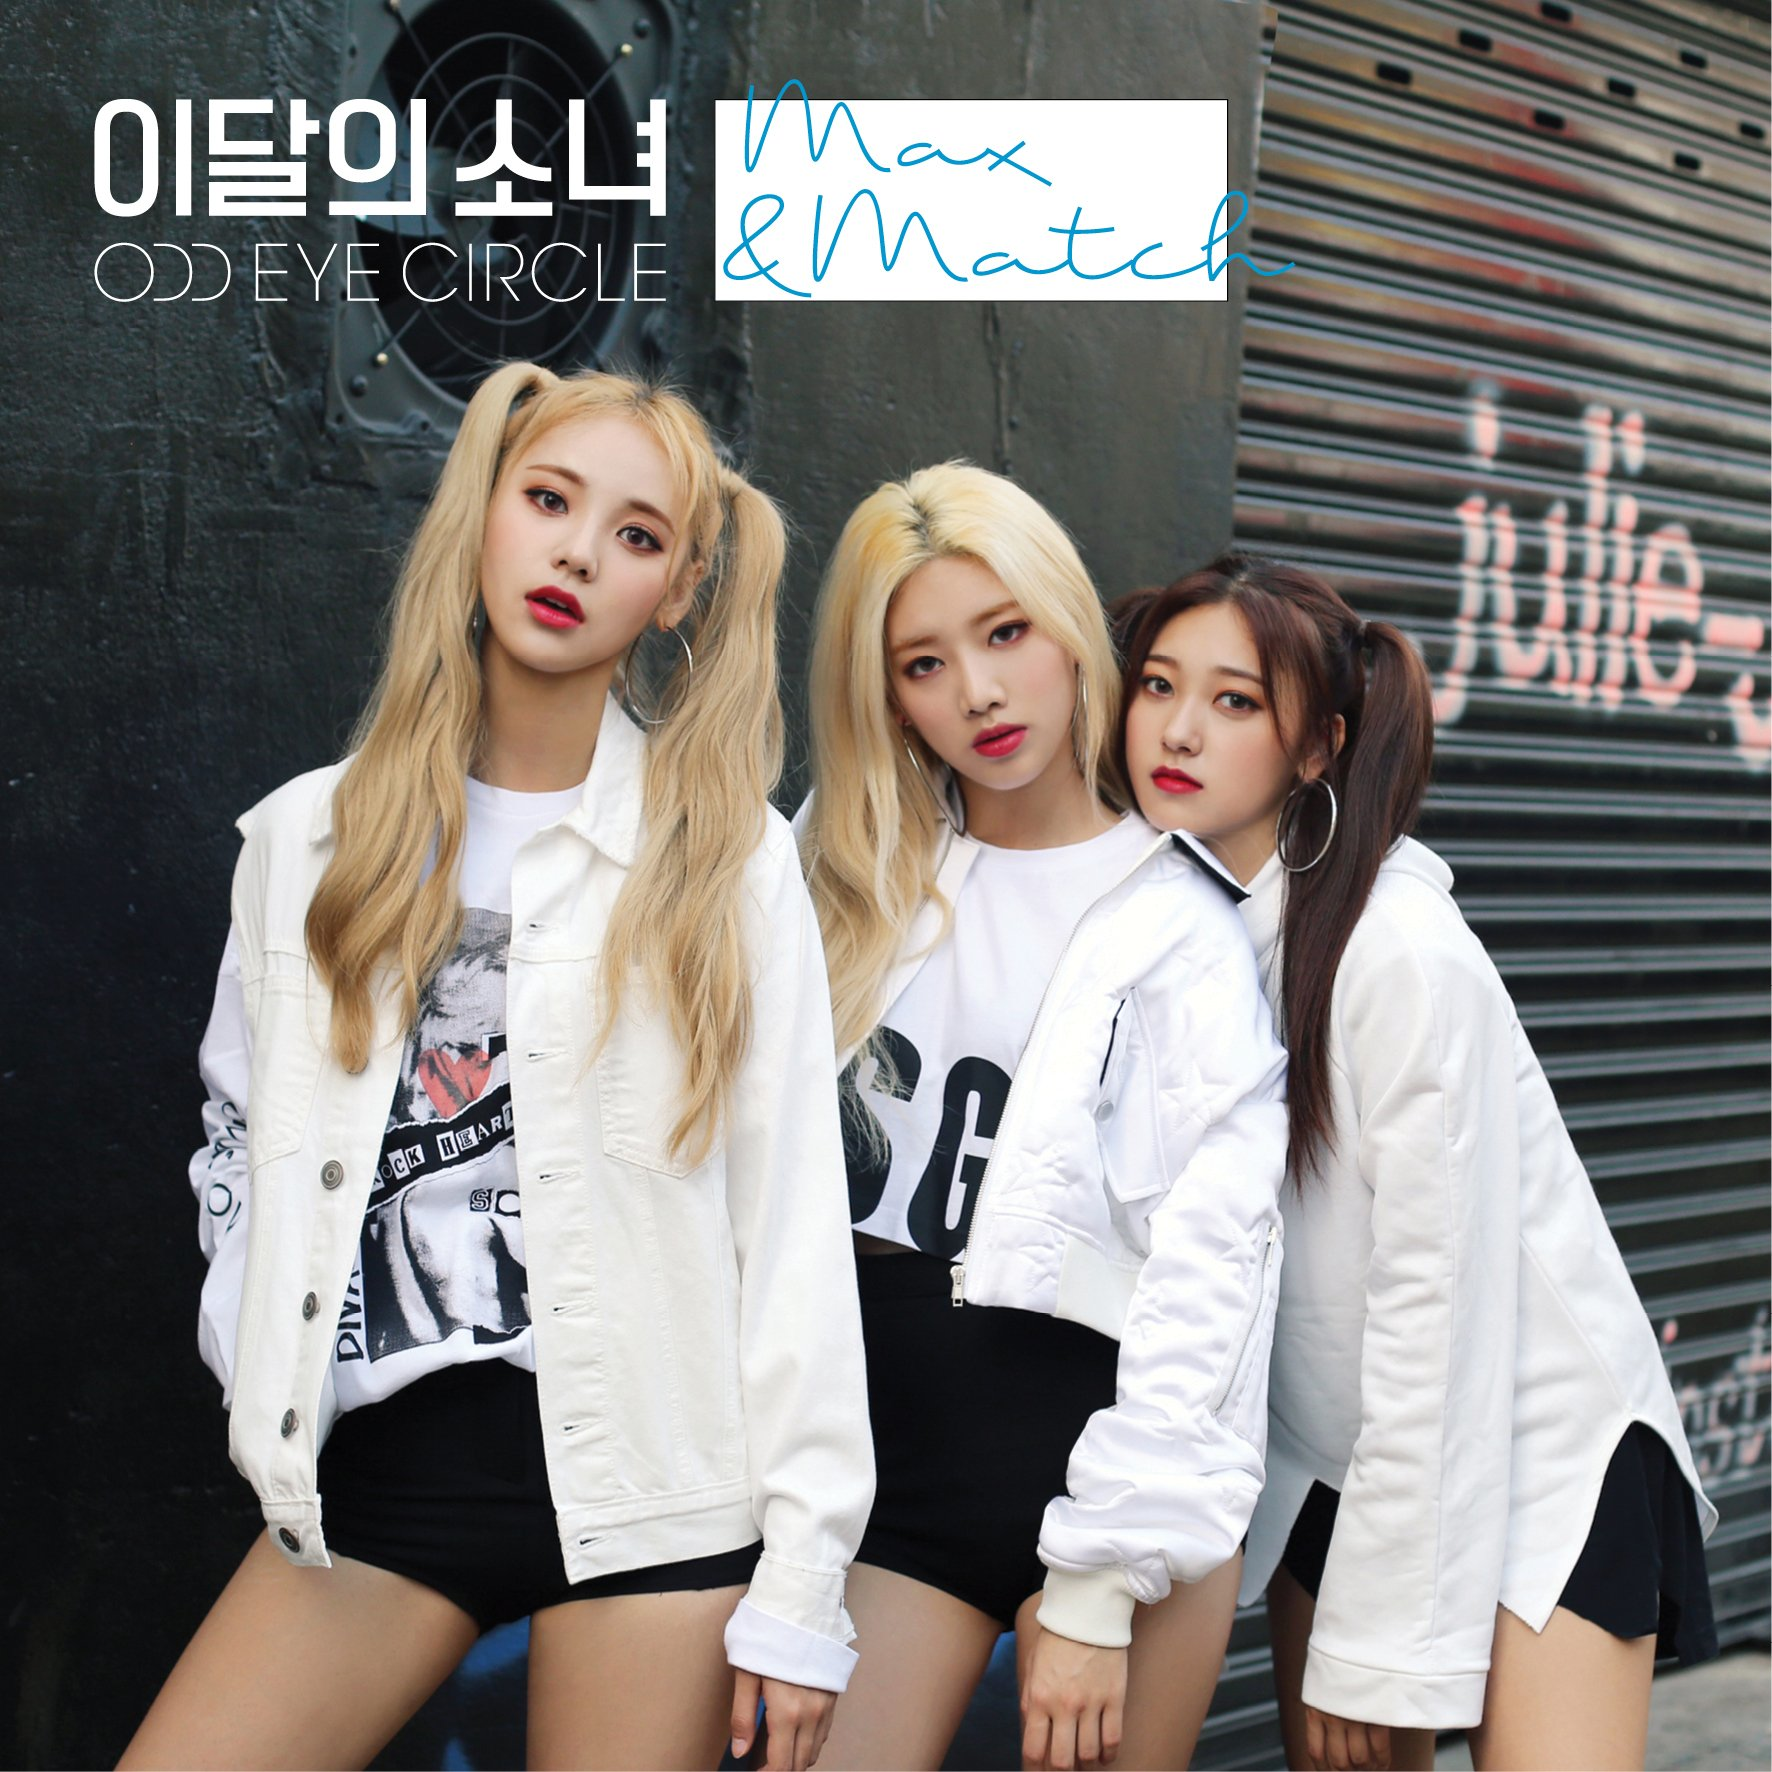 ODD EYE CIRCLE Max and Match limited cover art.png